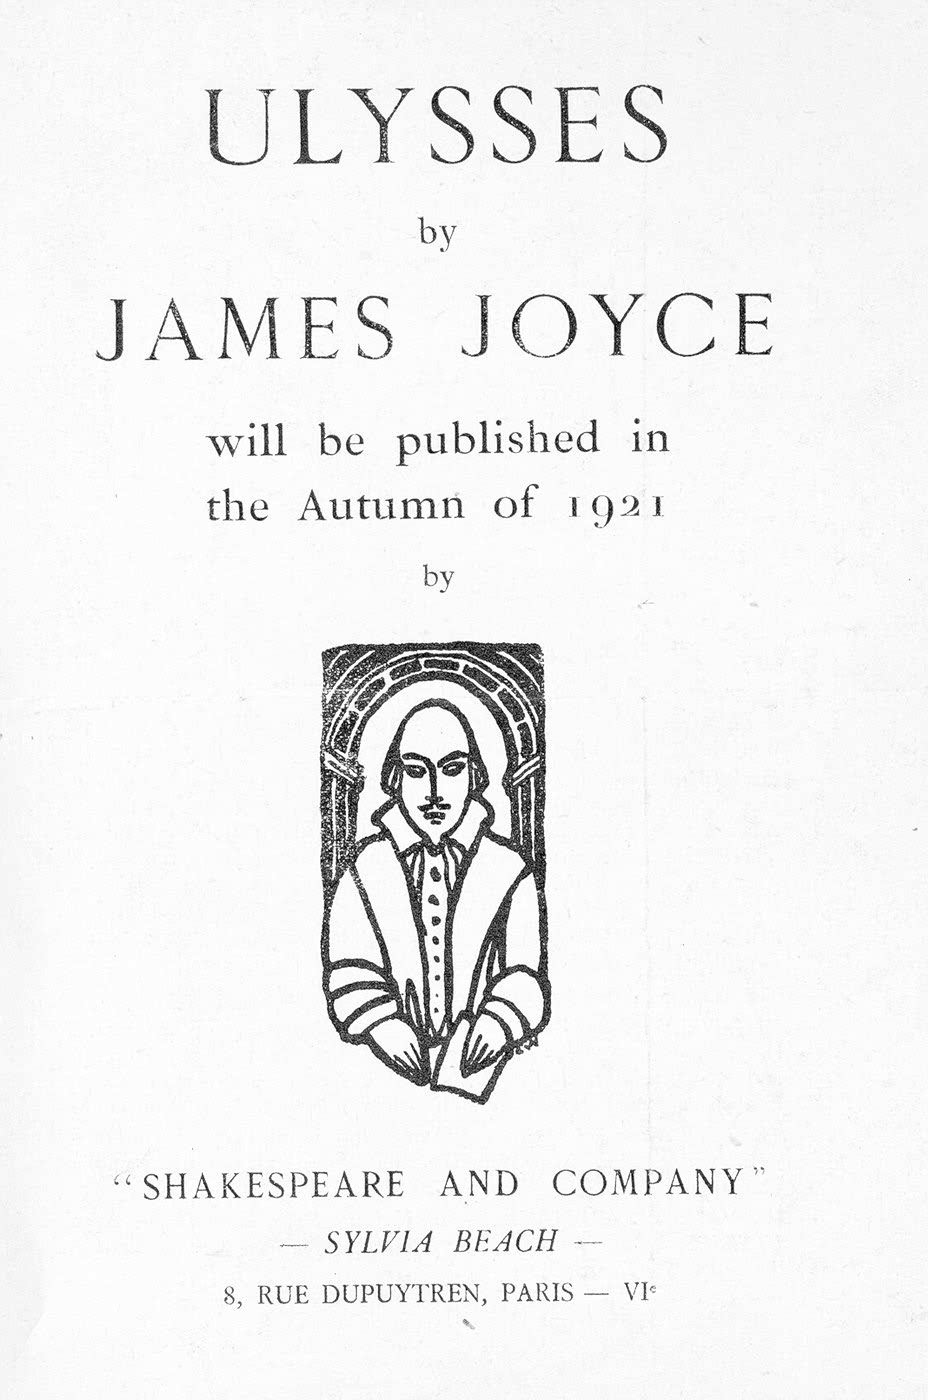 james joyce and his literary works James joyce was an irish novelist and poet he was an influential writer in the early 20th century who was known for his stream-of-consciousness style.